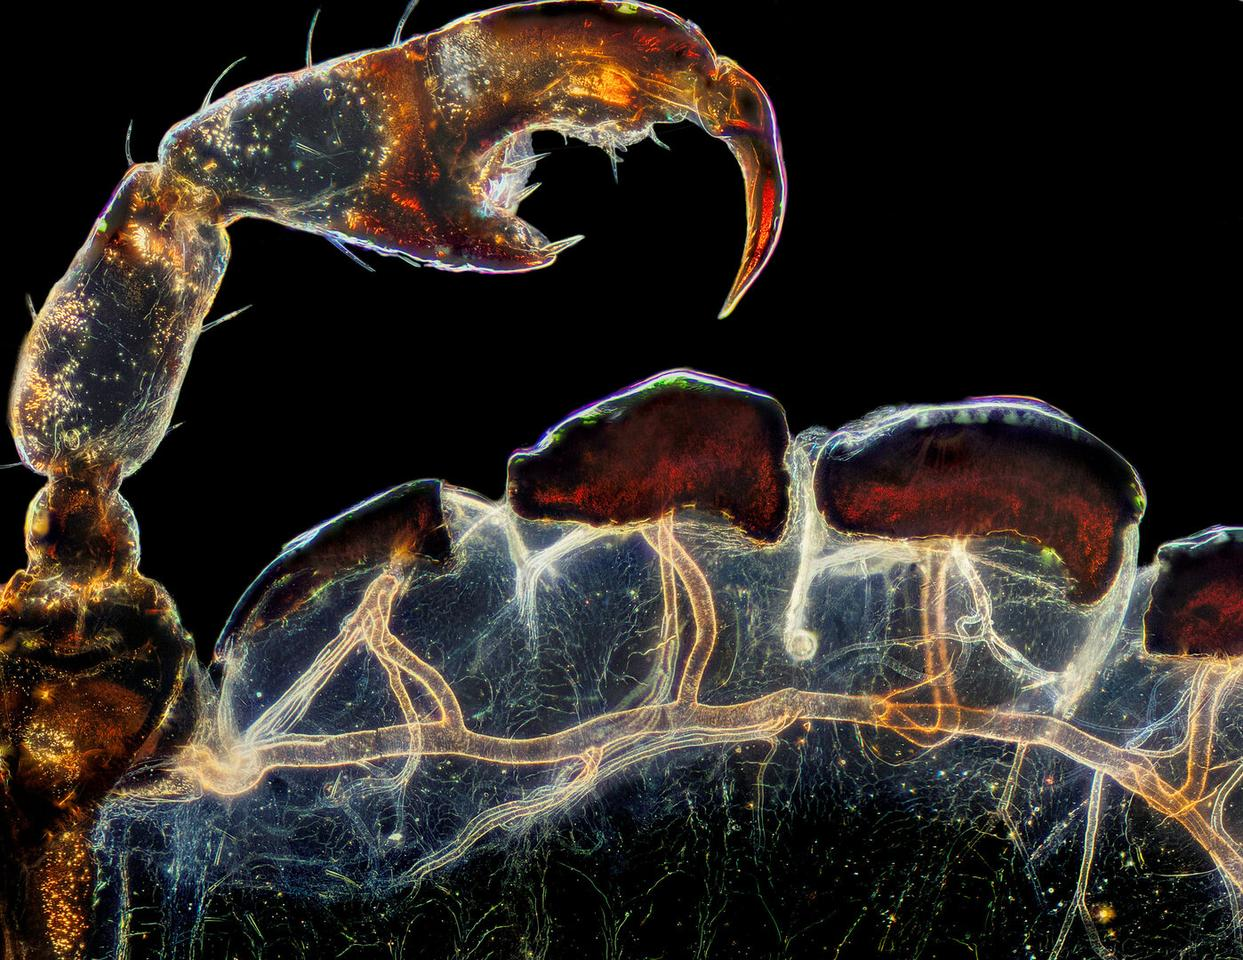 3rd Place. Rear leg, claw, and respiratory trachea of a louse (Haematopinus suis). Darkfield. Image Stacking. 5X (Objective Lens Magnification)